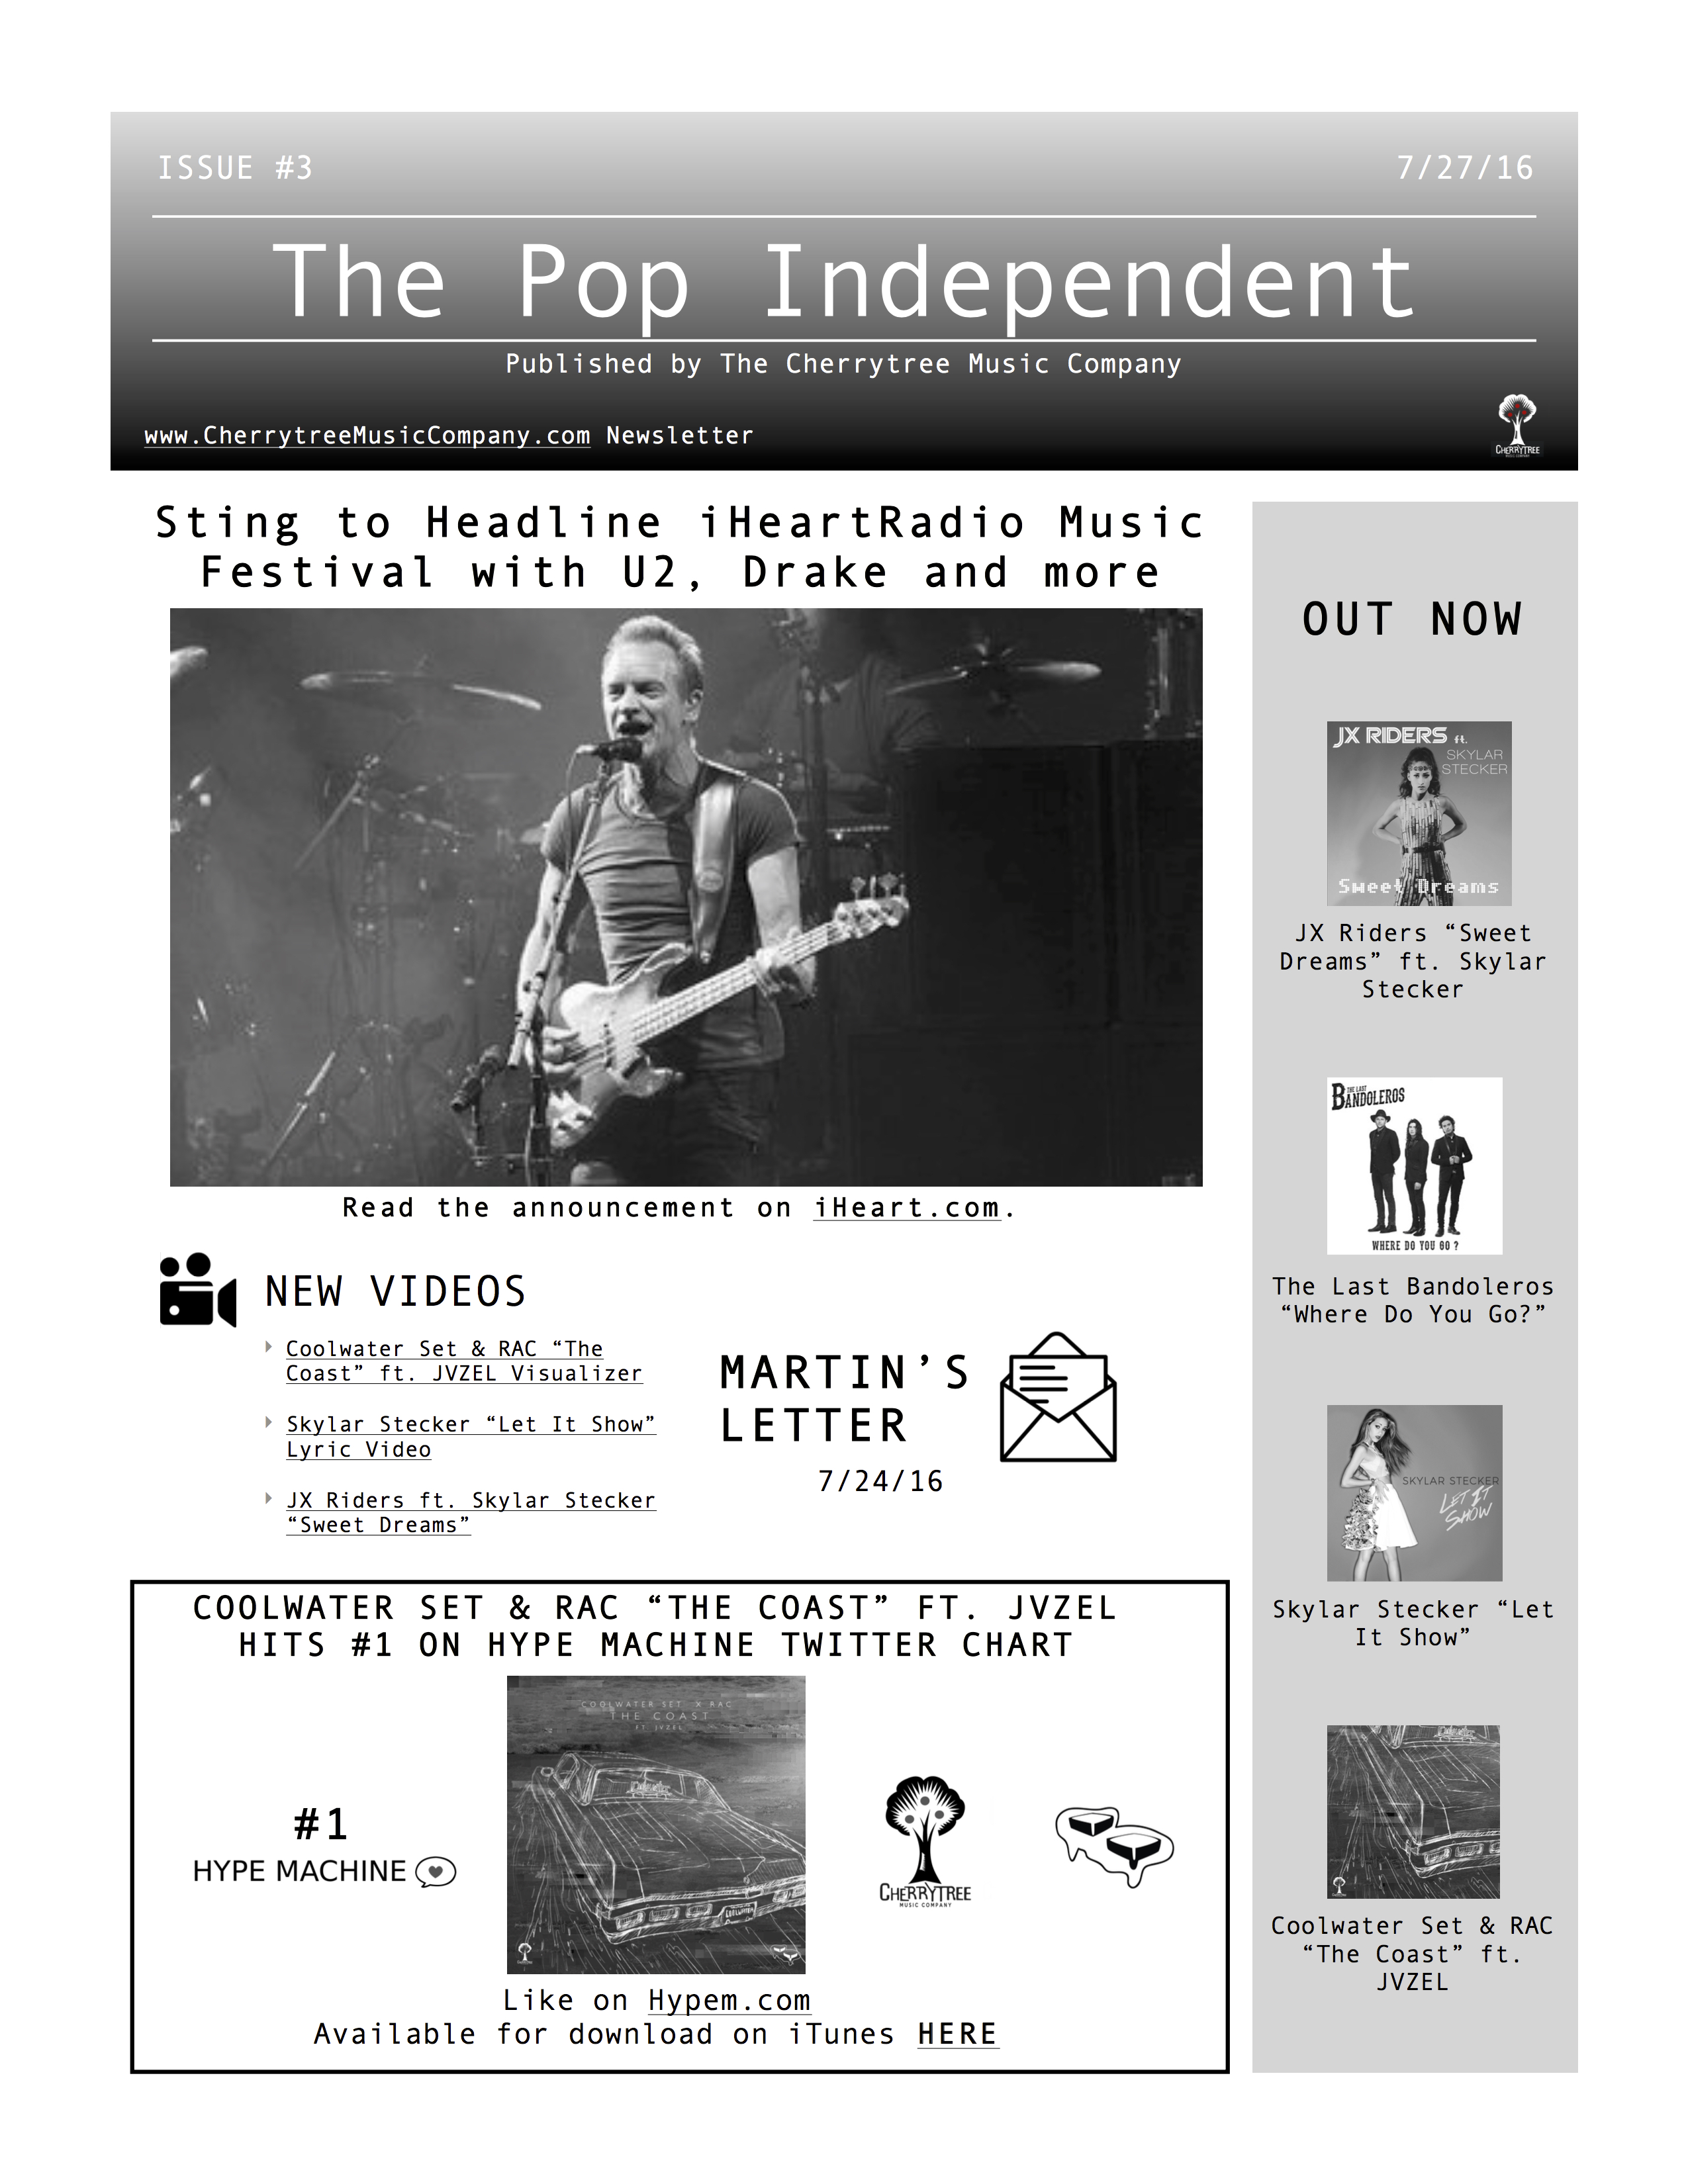 The Pop Independent, issue 3